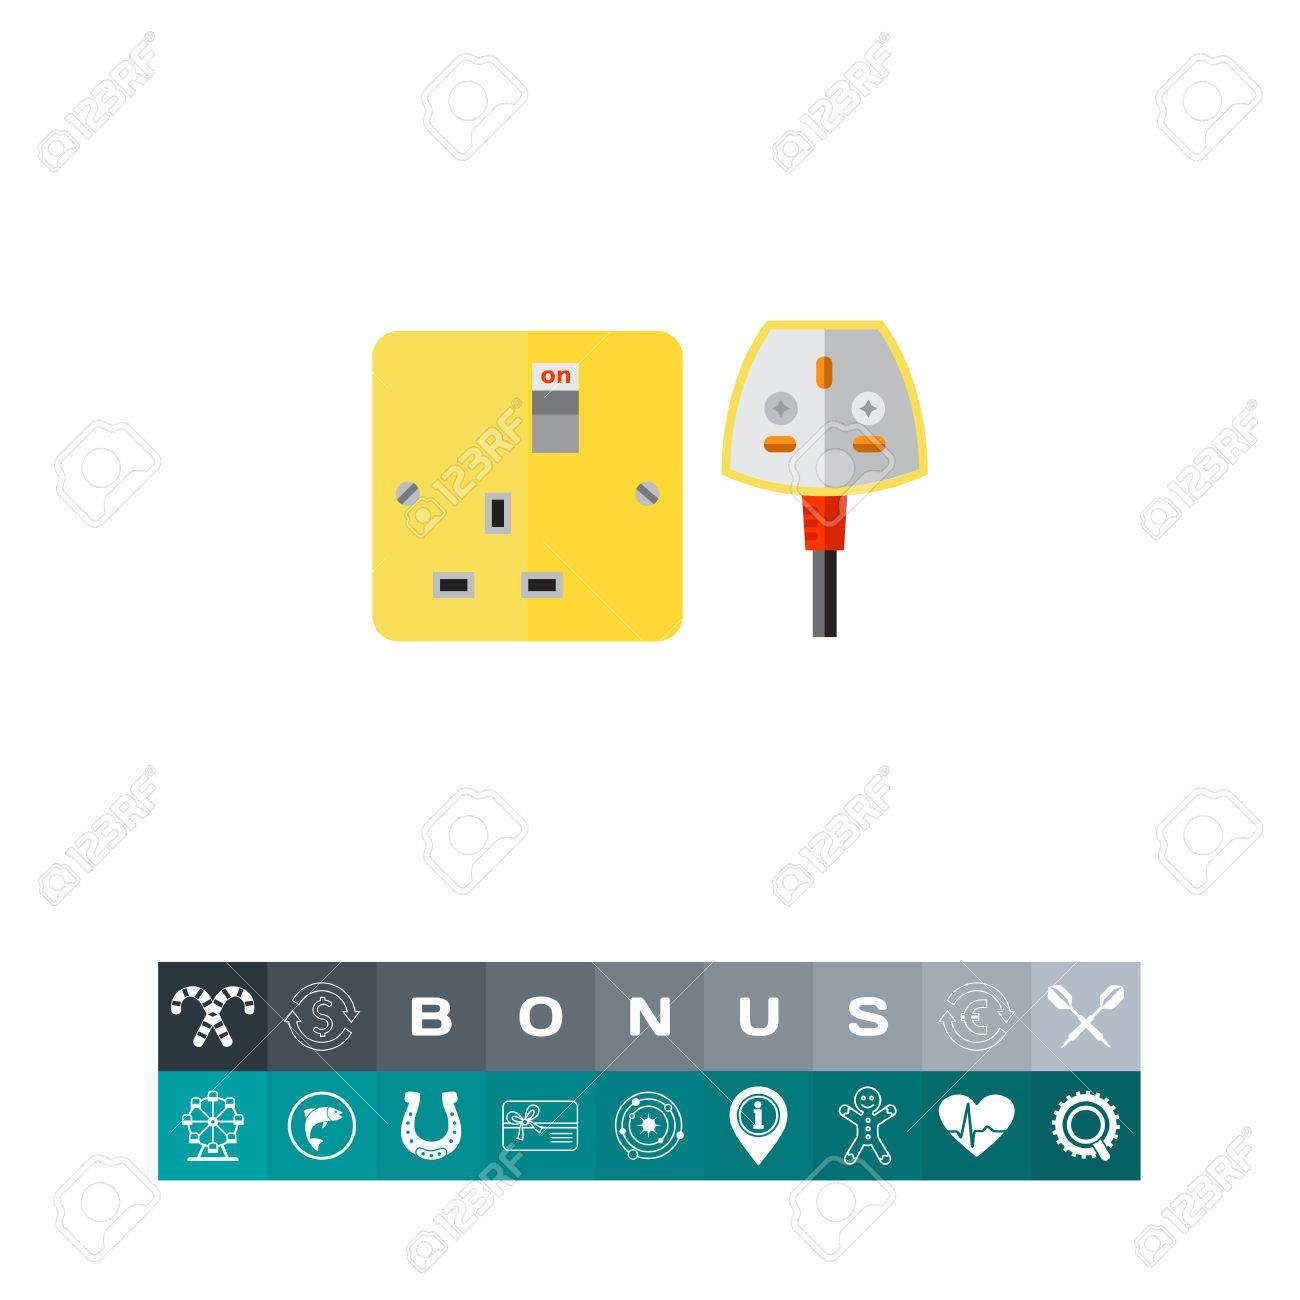 Electrical Outlet And Plug In UK. Safety, Energy, House. Power ...